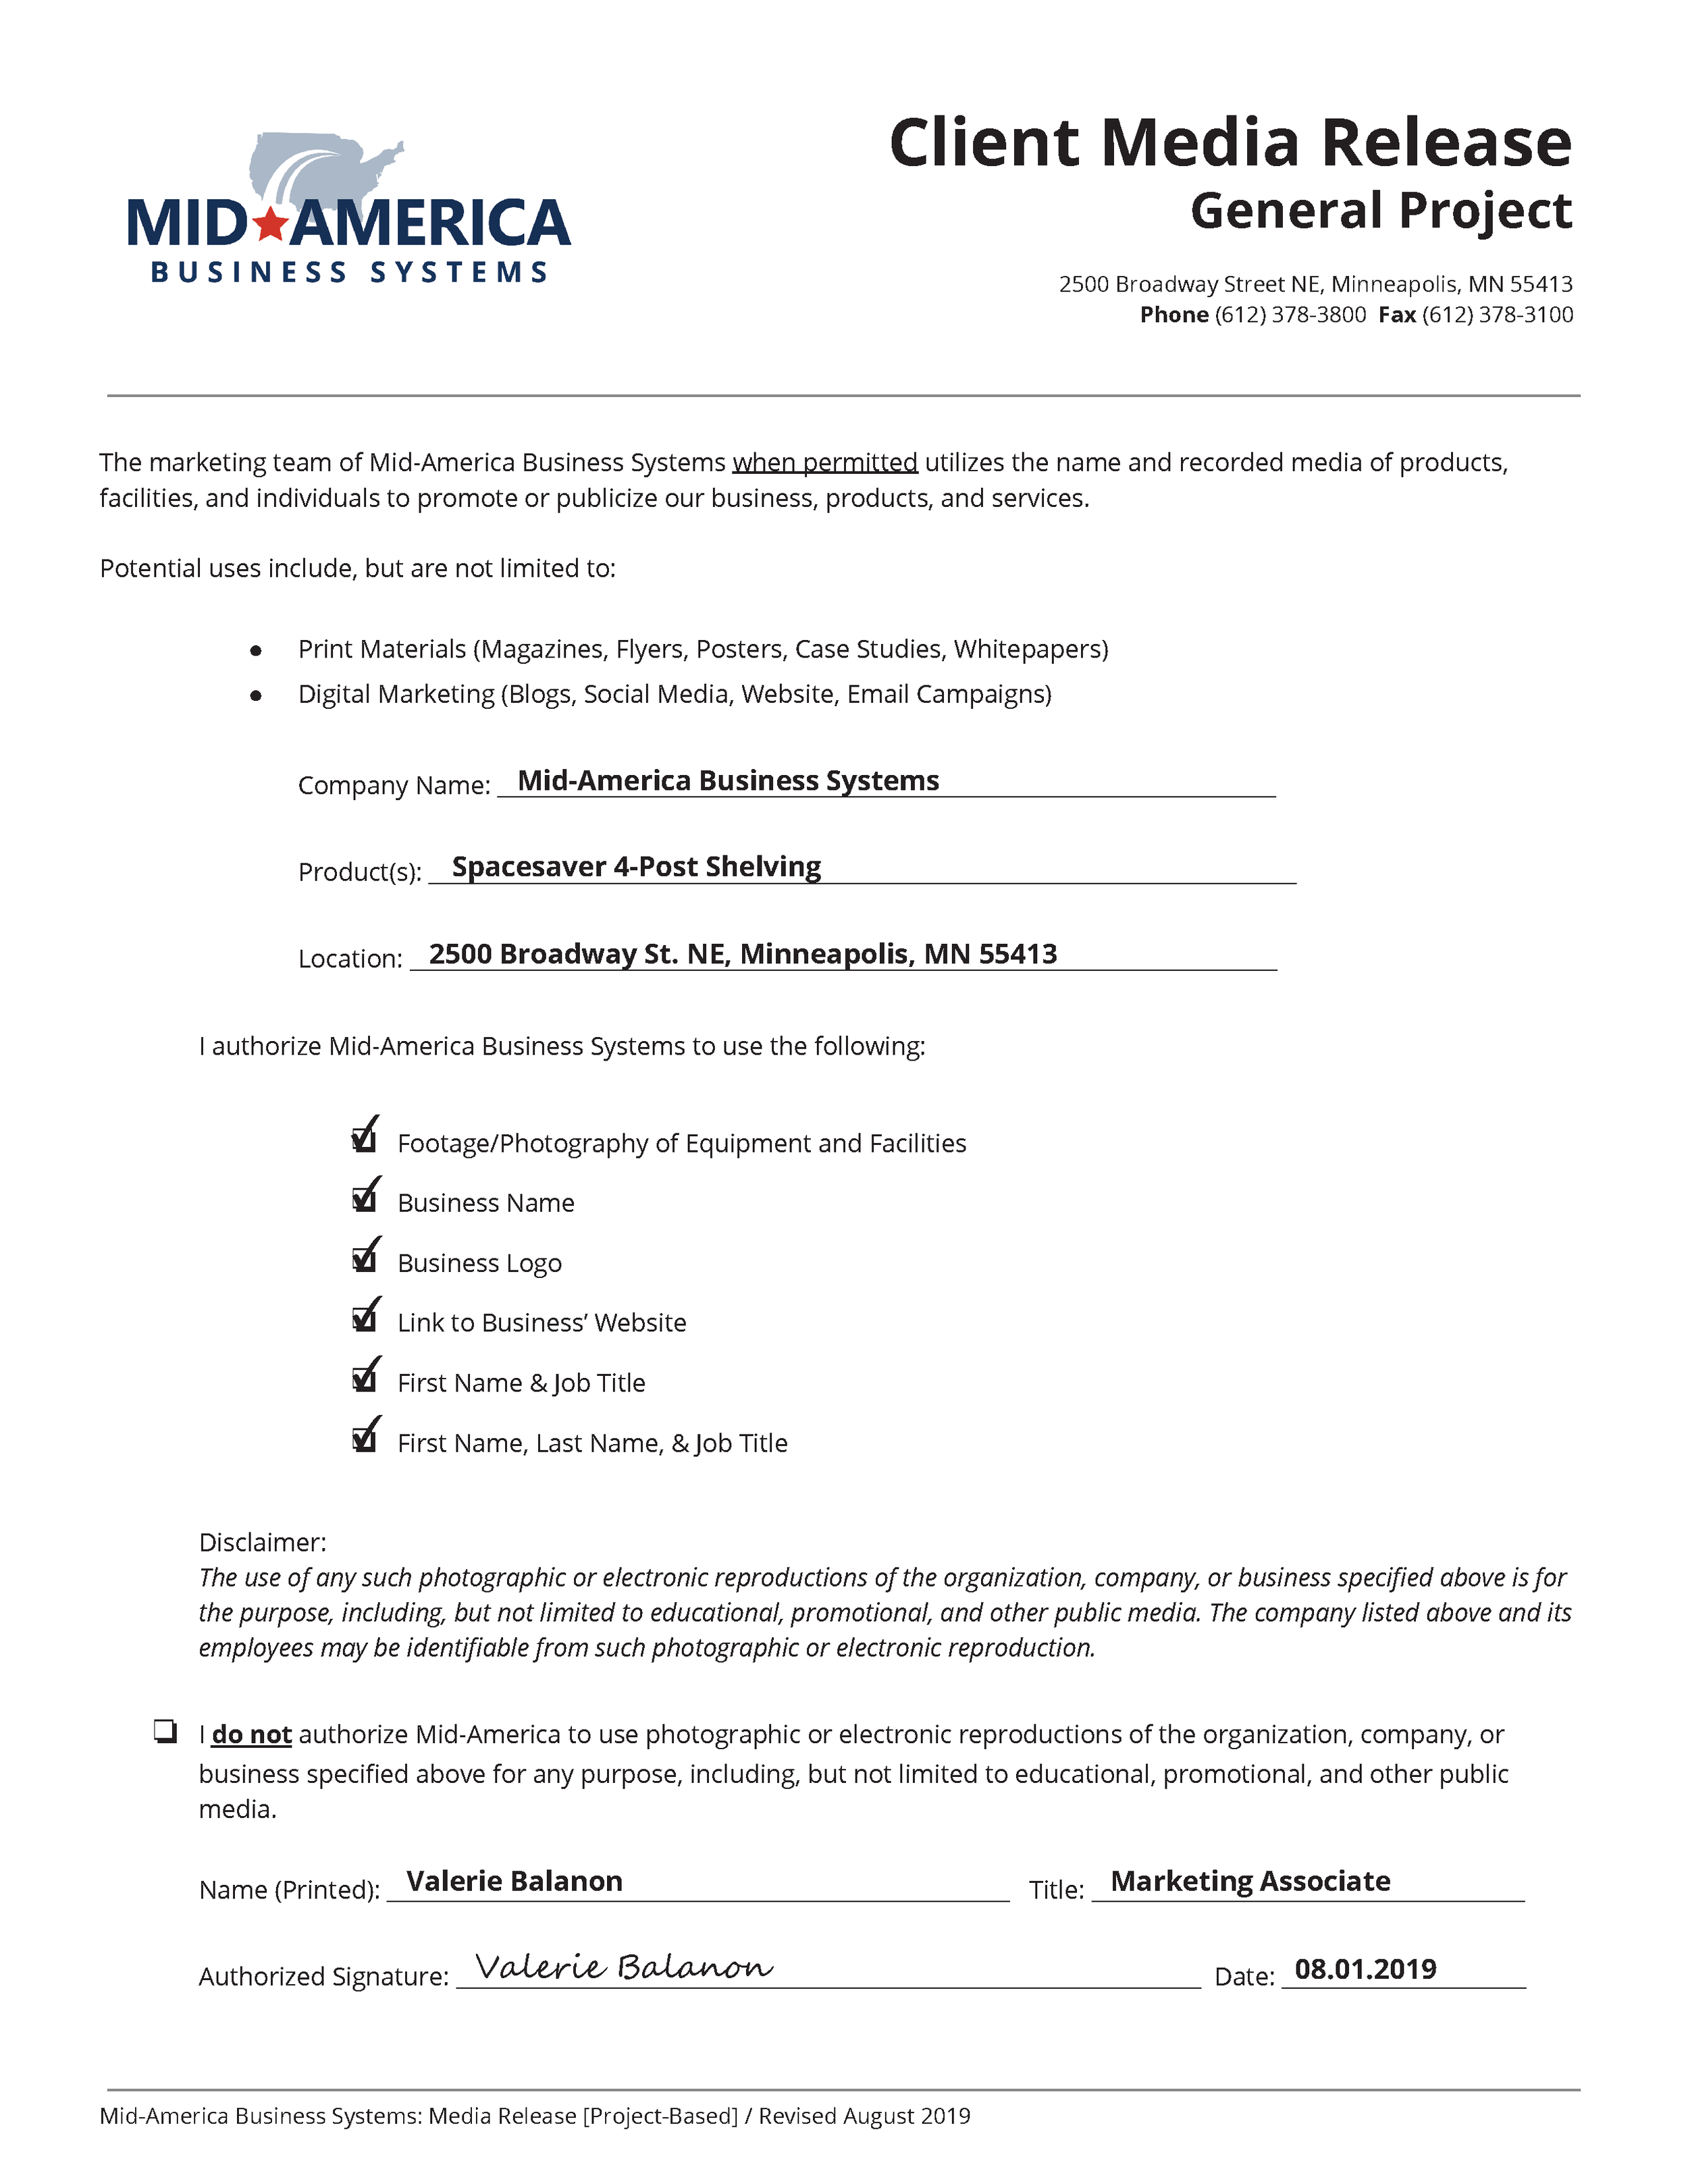 Example of Project Based Media Release Form Filled with Adobe Acrobat